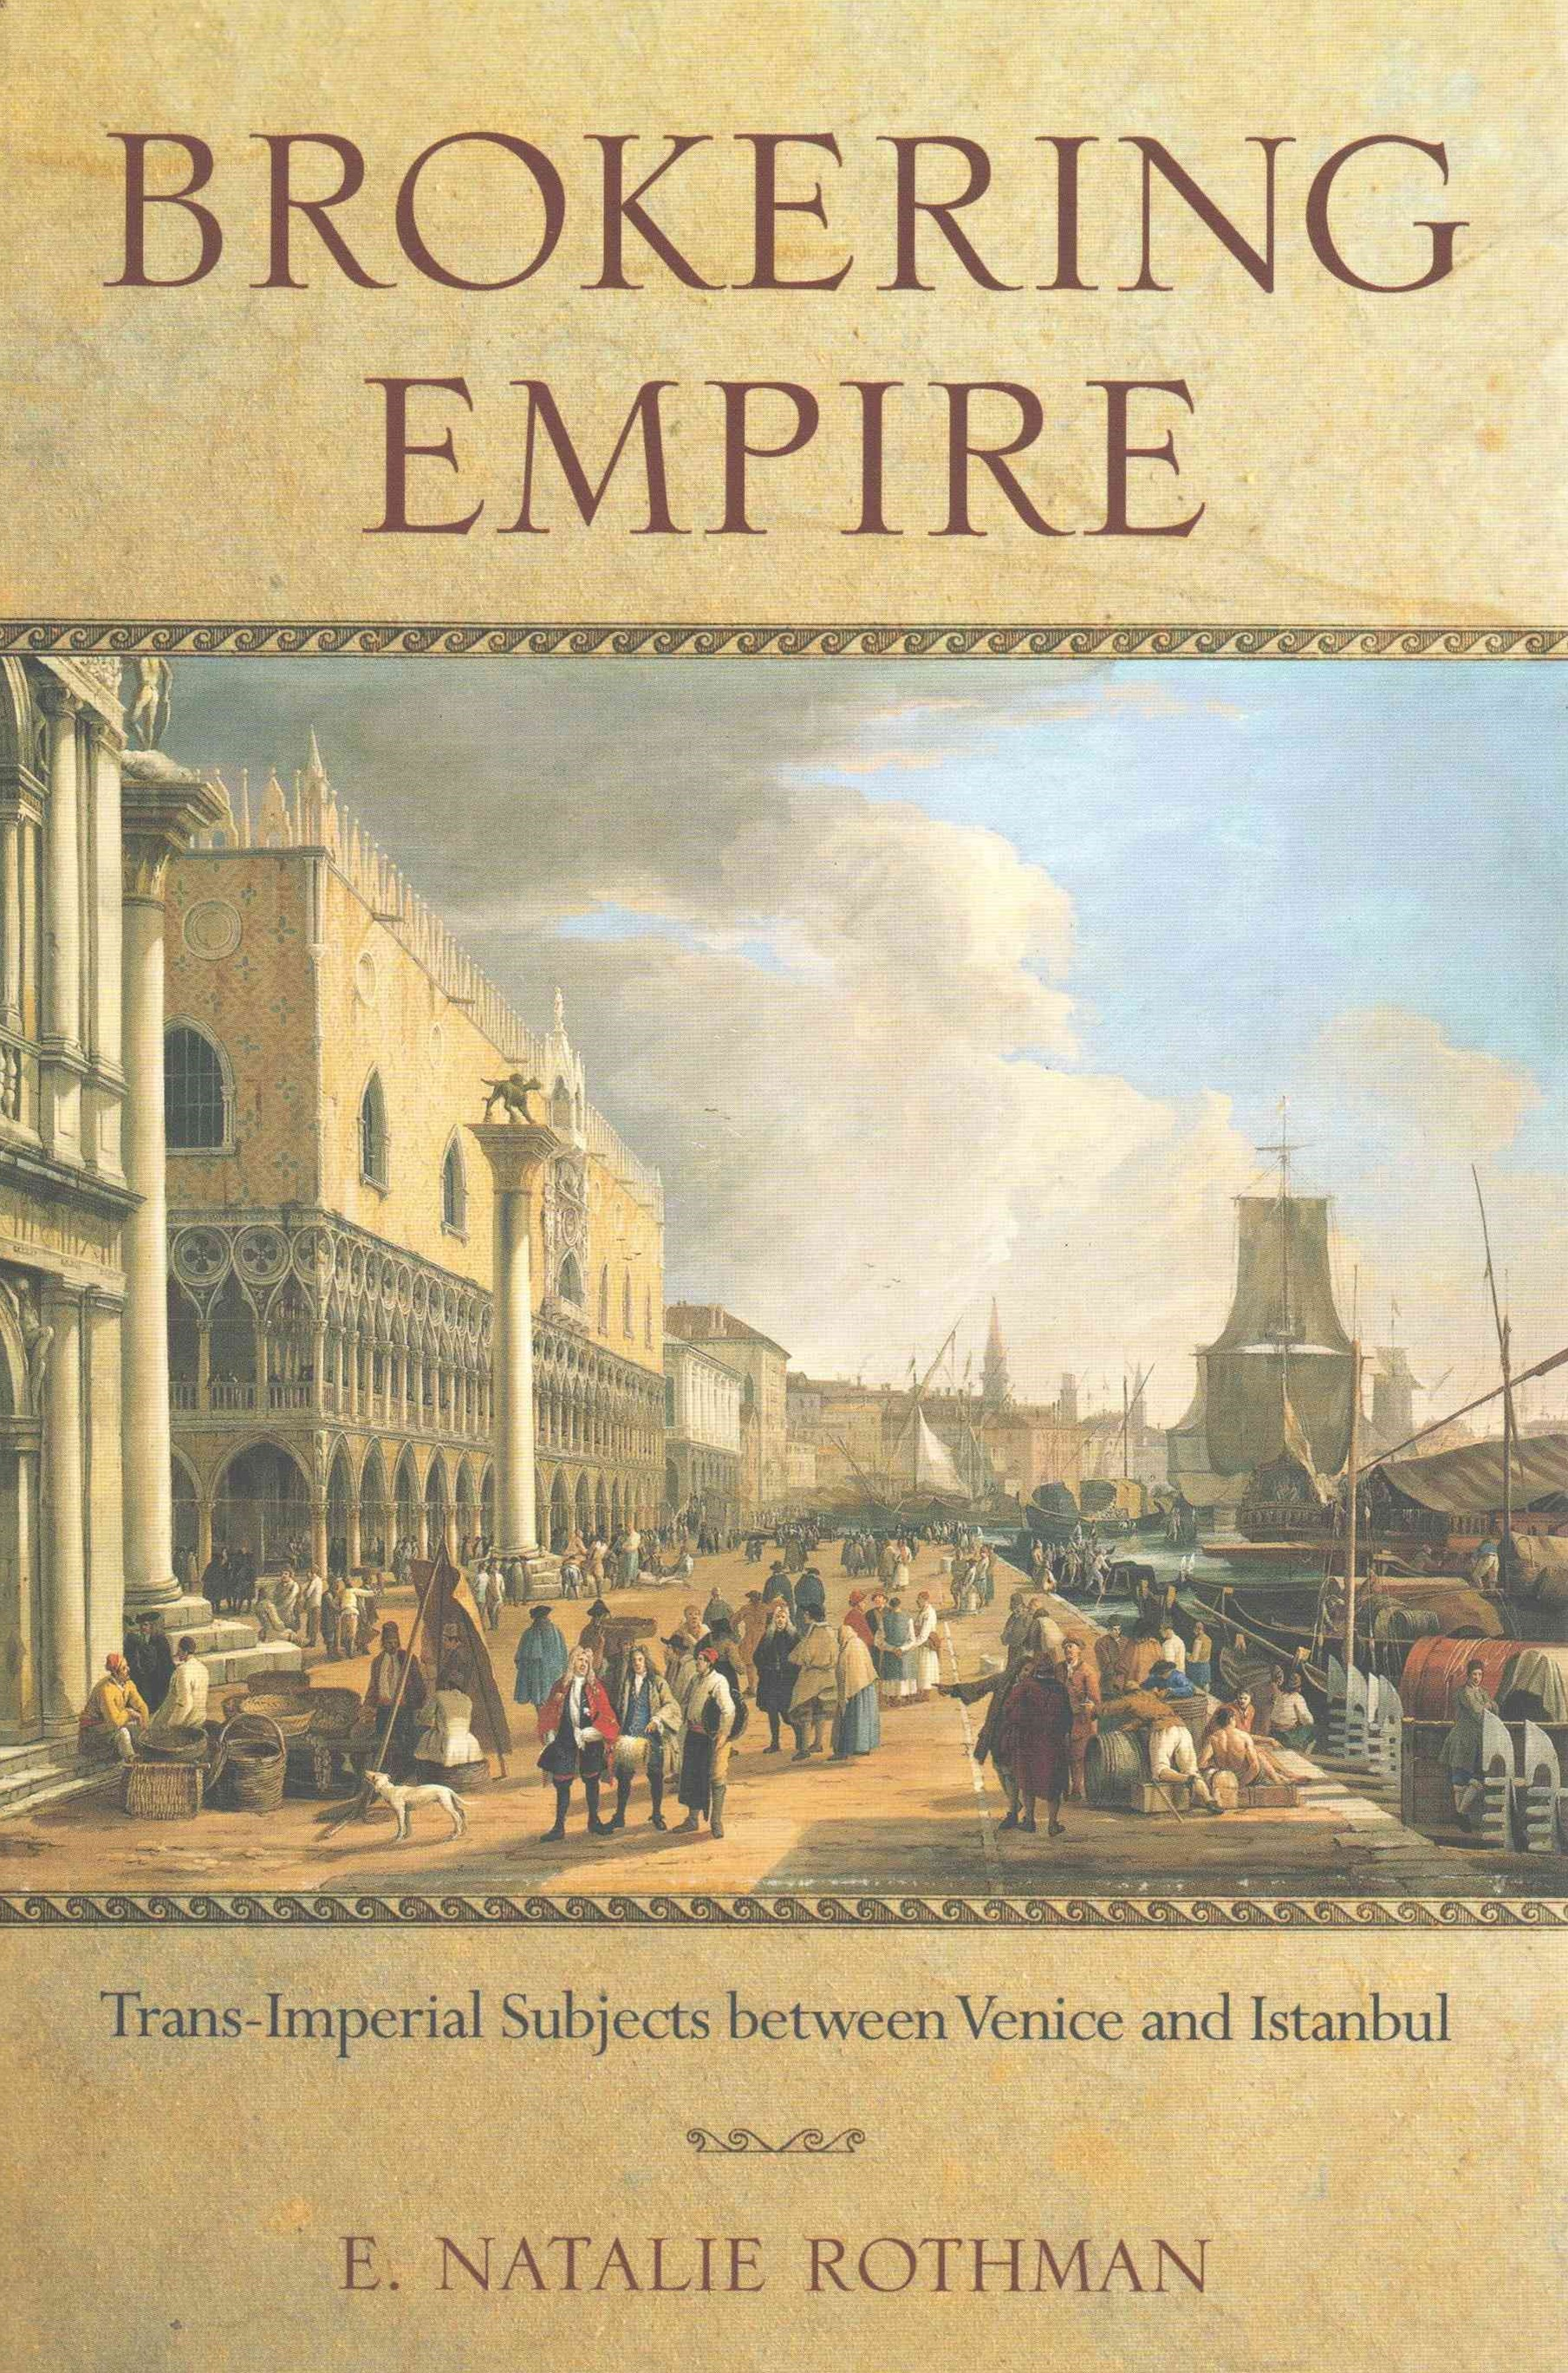 Brokering Empire